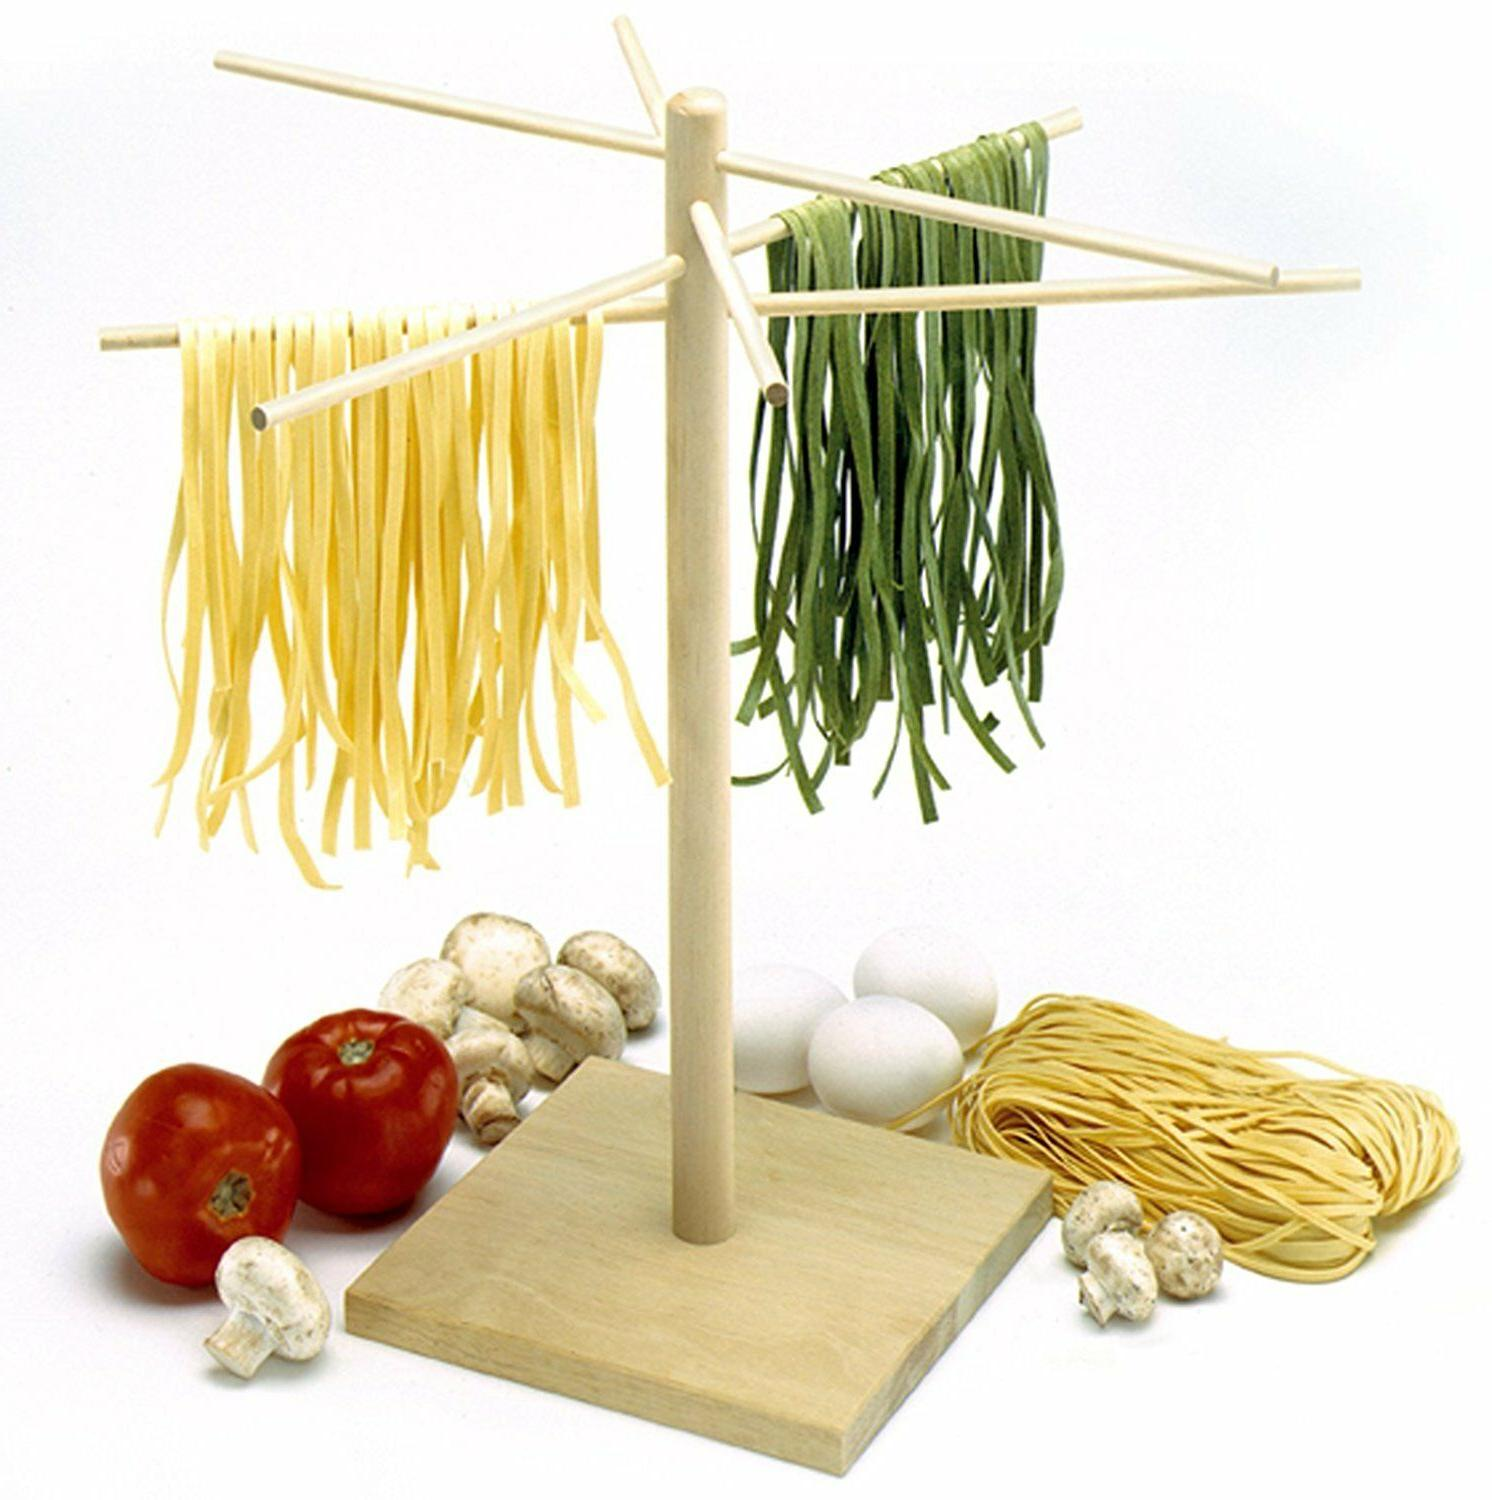 pasta drying rack stand spaghetti holder noodle